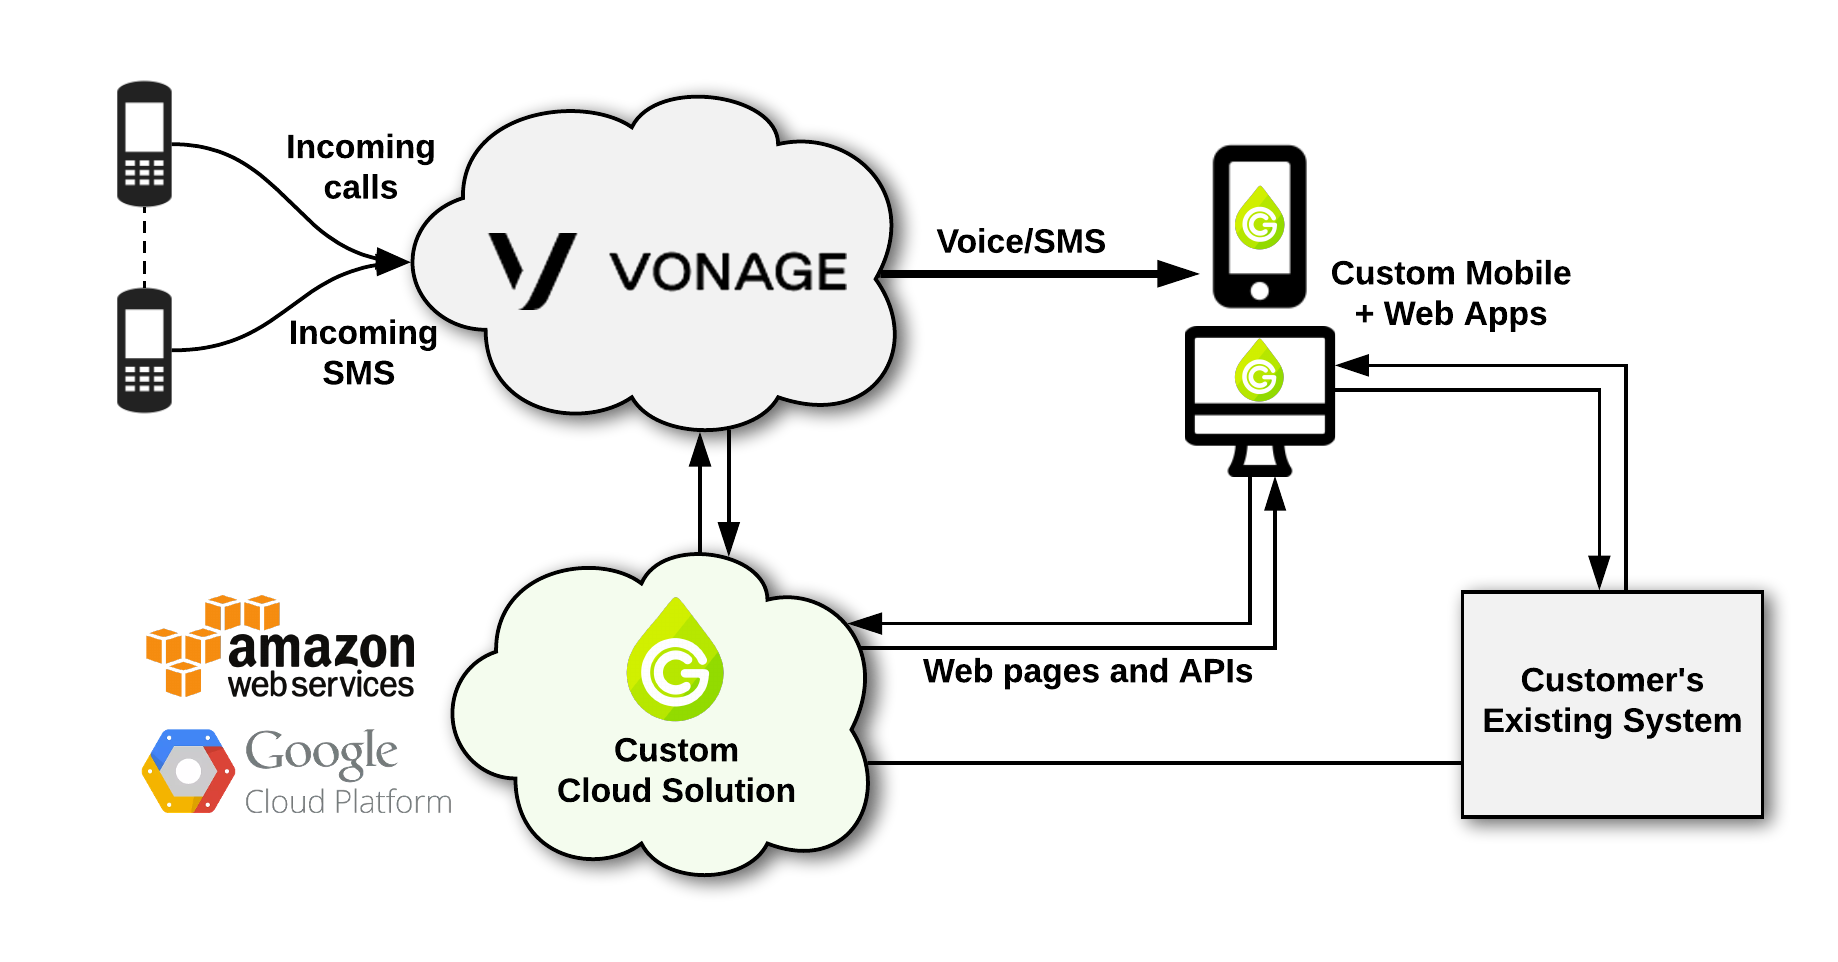 Diagram showing the Green Custard and Vonage workflow